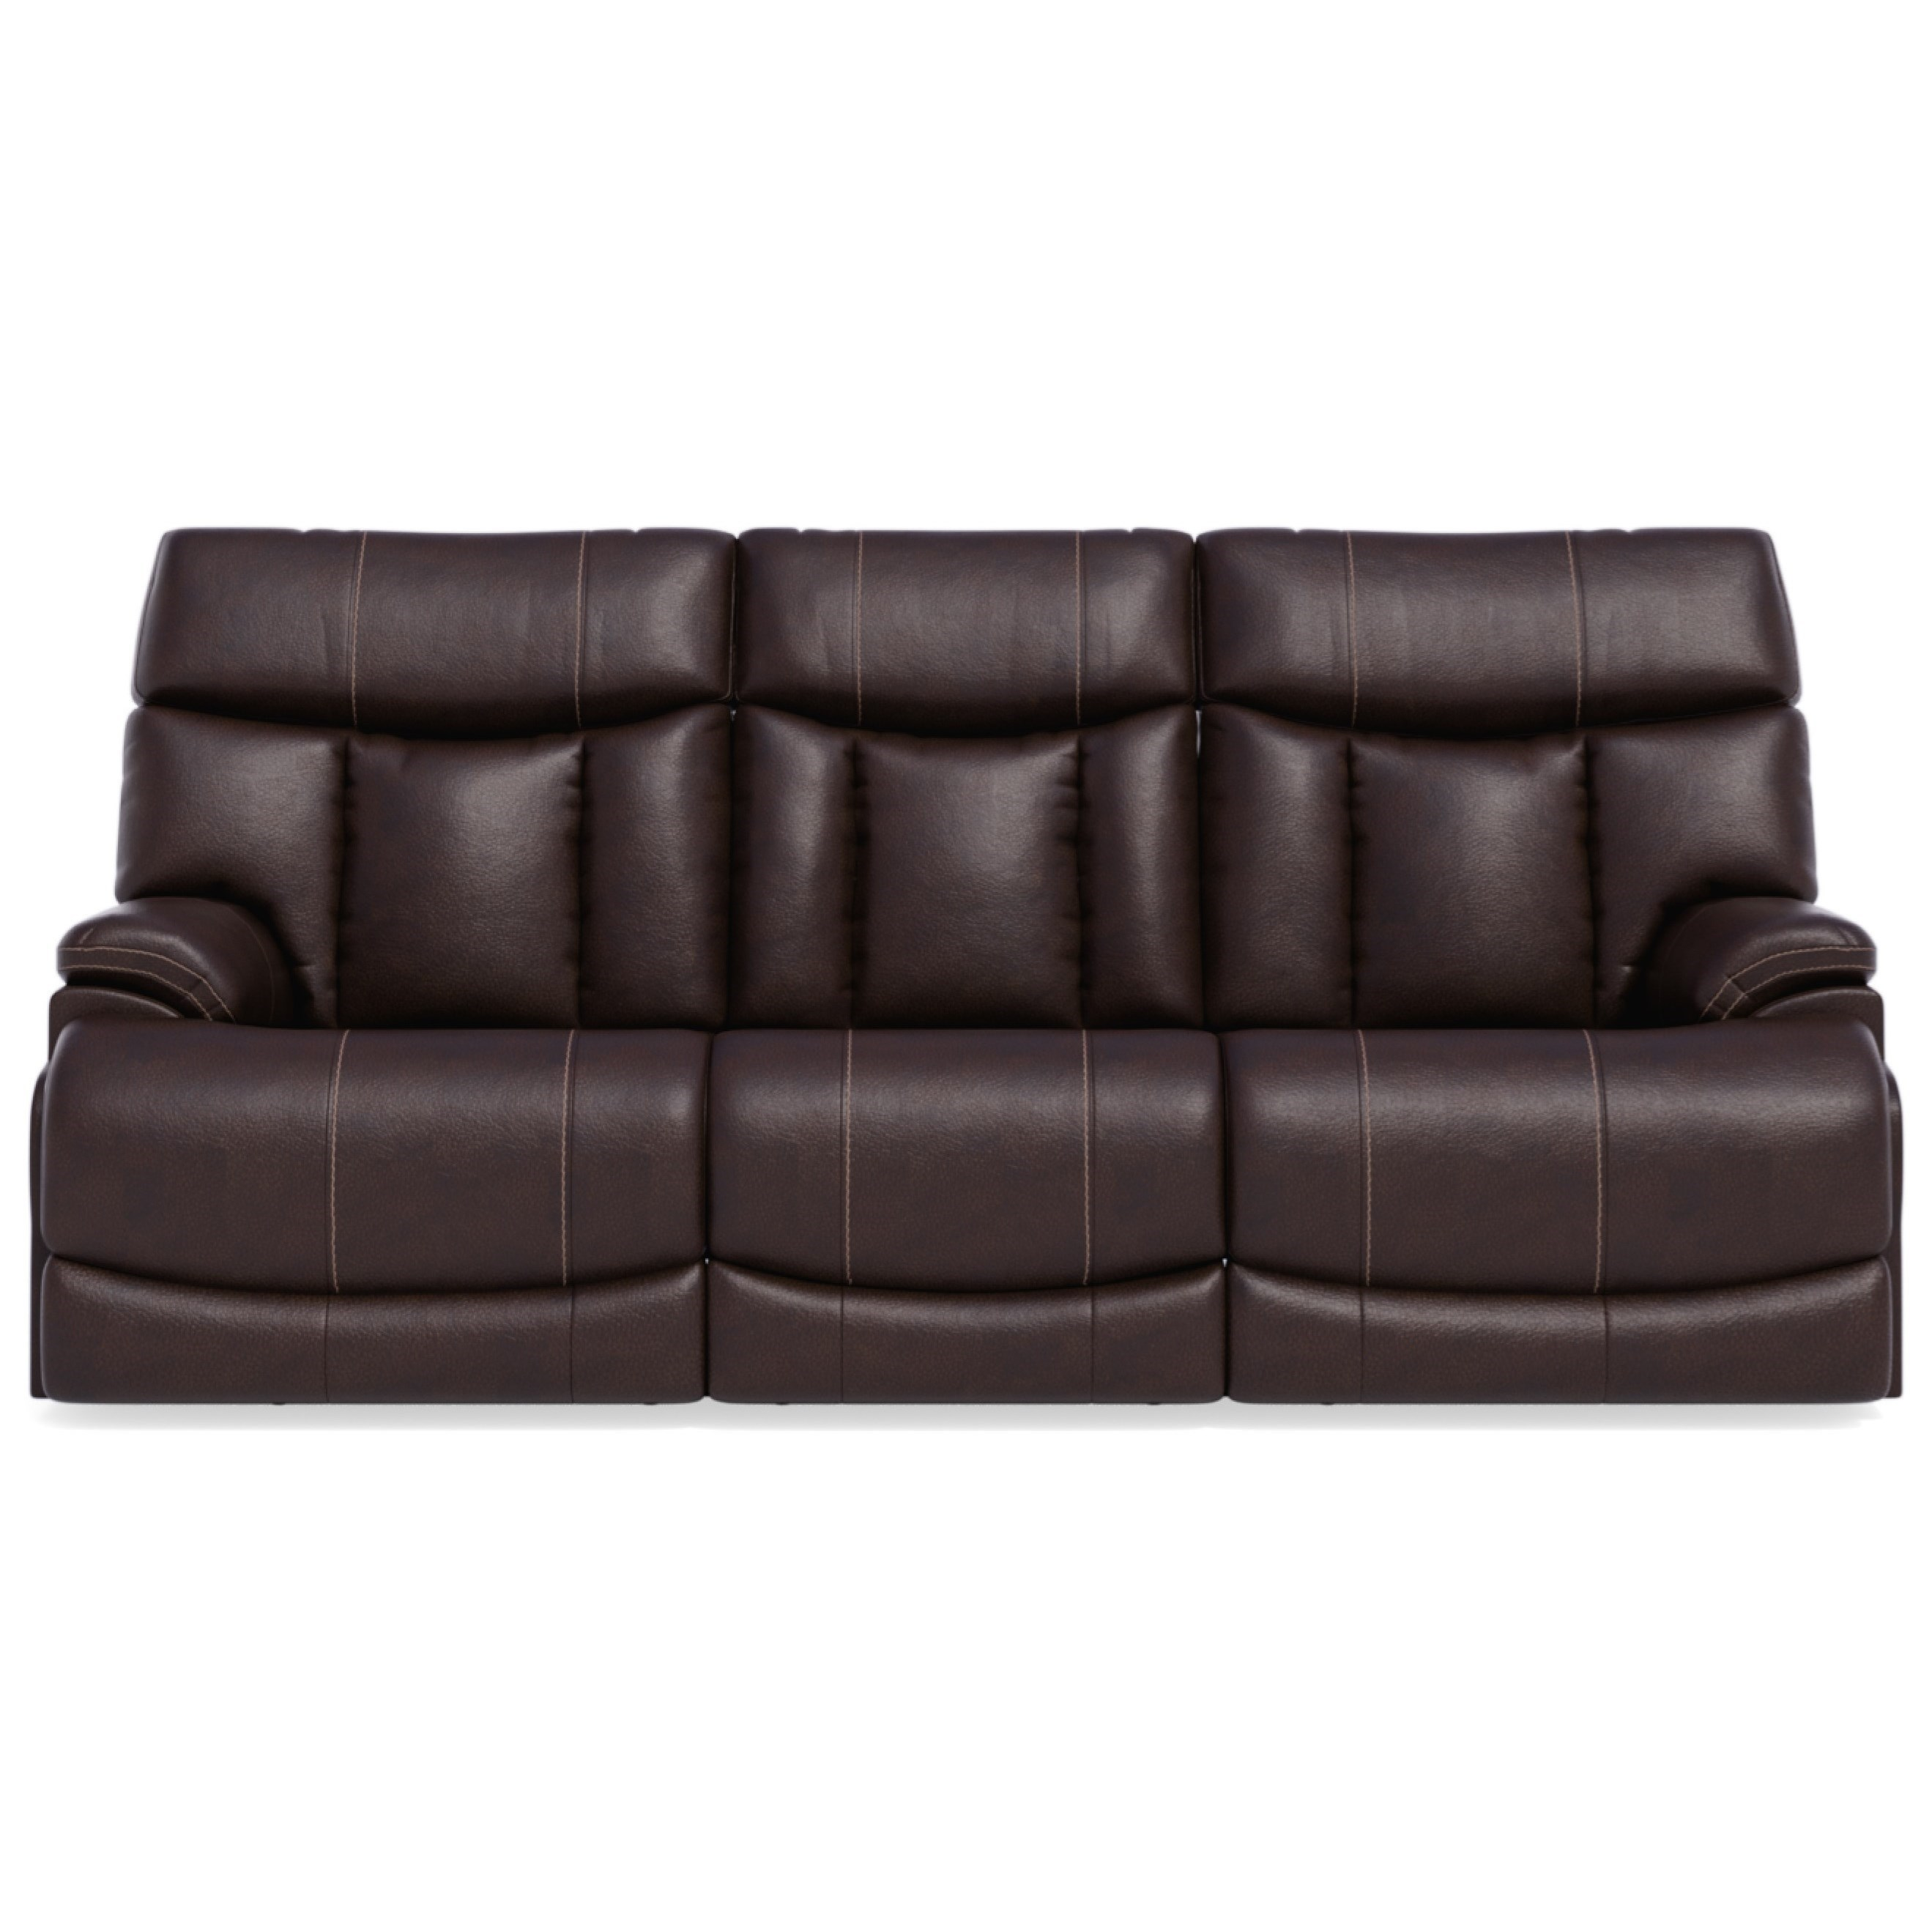 Latitudes-Clive Reclining Sofa by Flexsteel at Walker's Furniture